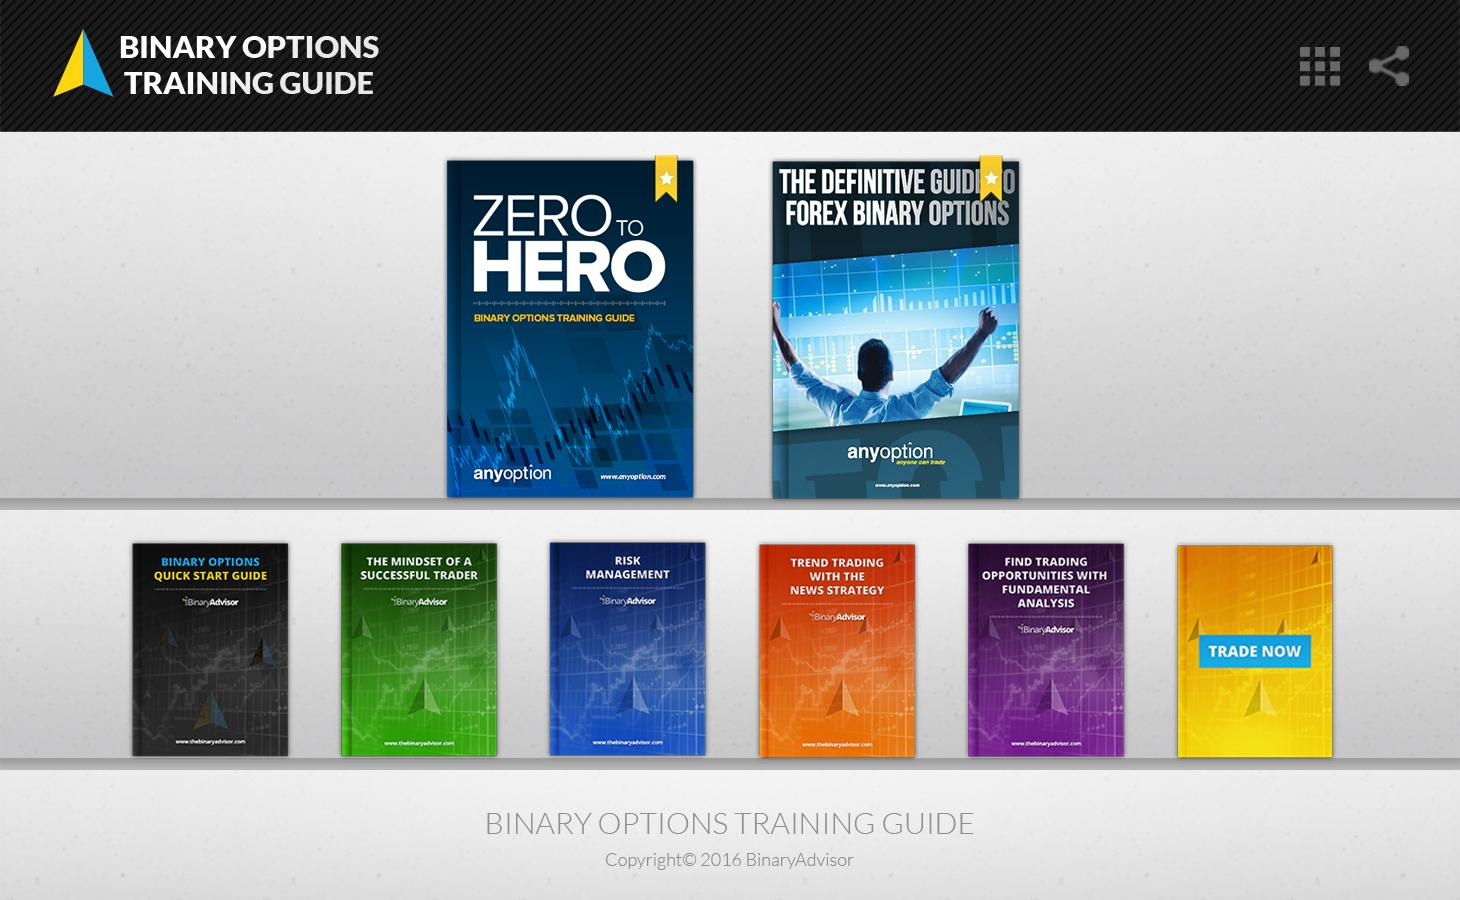 The binary options guide